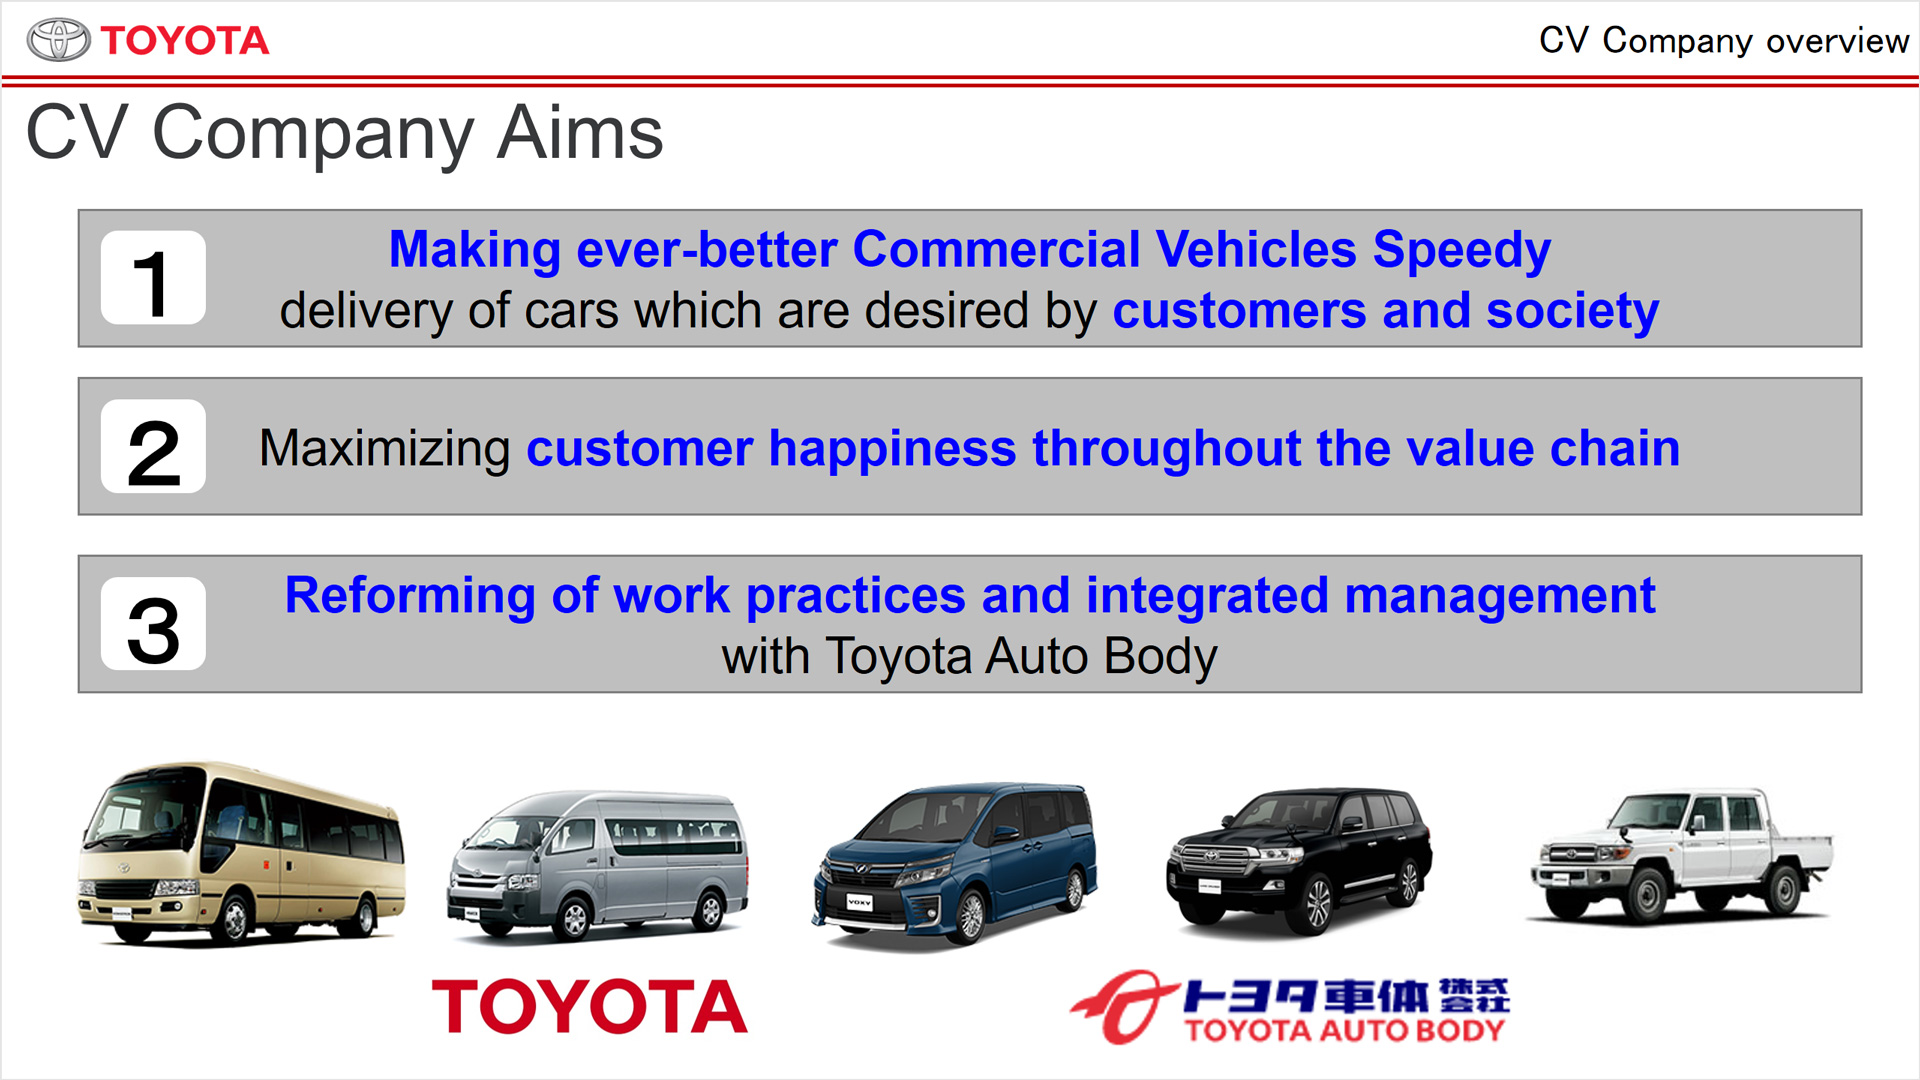 cv company briefing toyota global newsroom now i would like to talk about three broad topics which cover what the cv company is going to work on